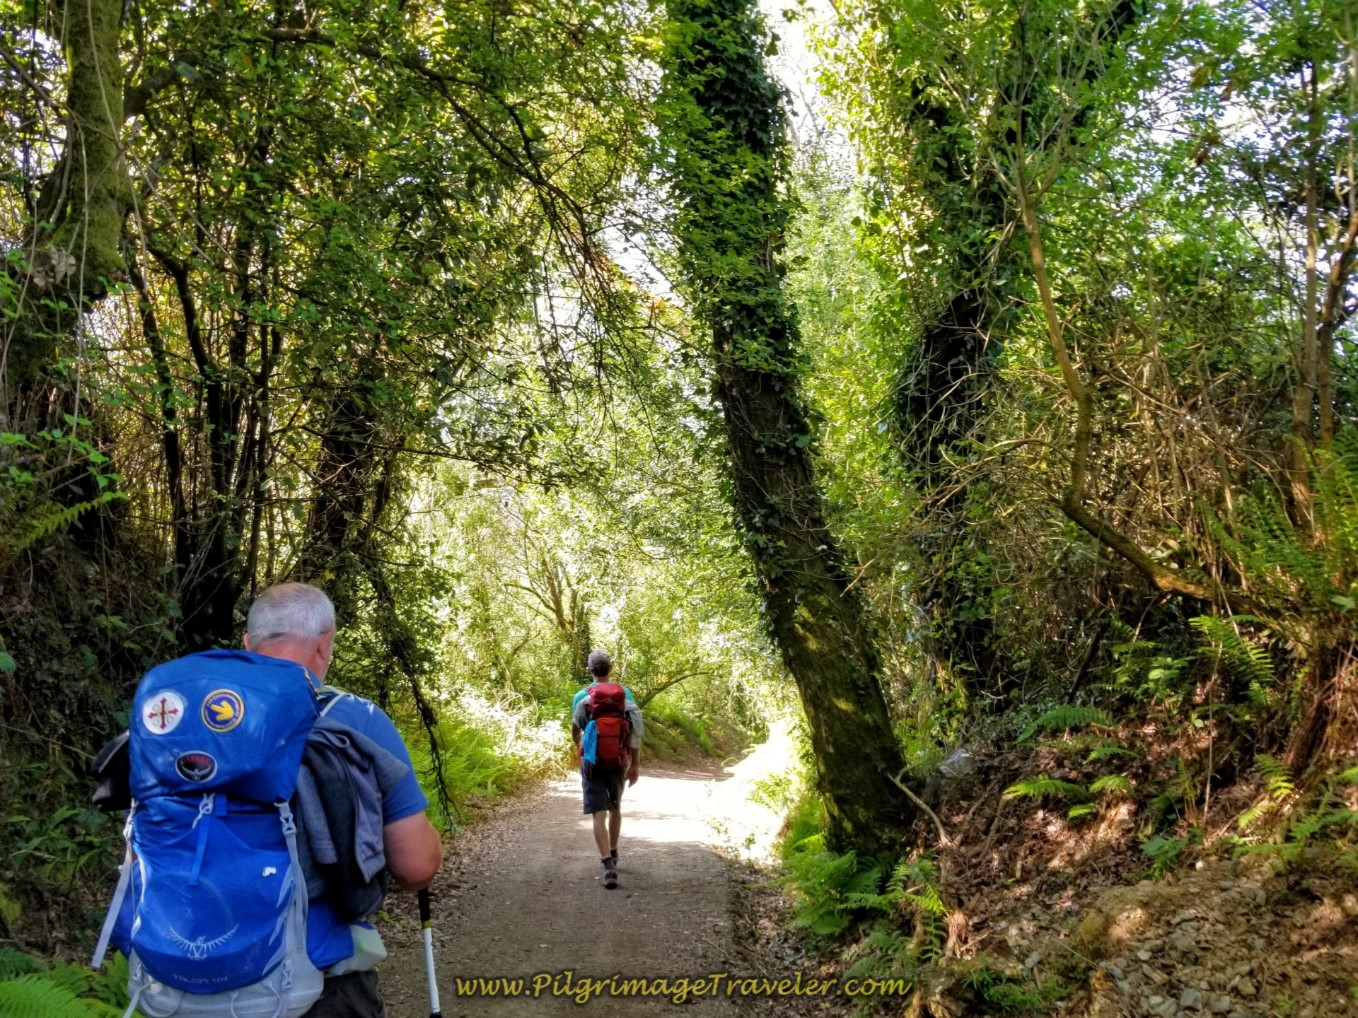 Steve and Rich Continue on Lane for 1/2 Kilometer More on day seven of the English Way